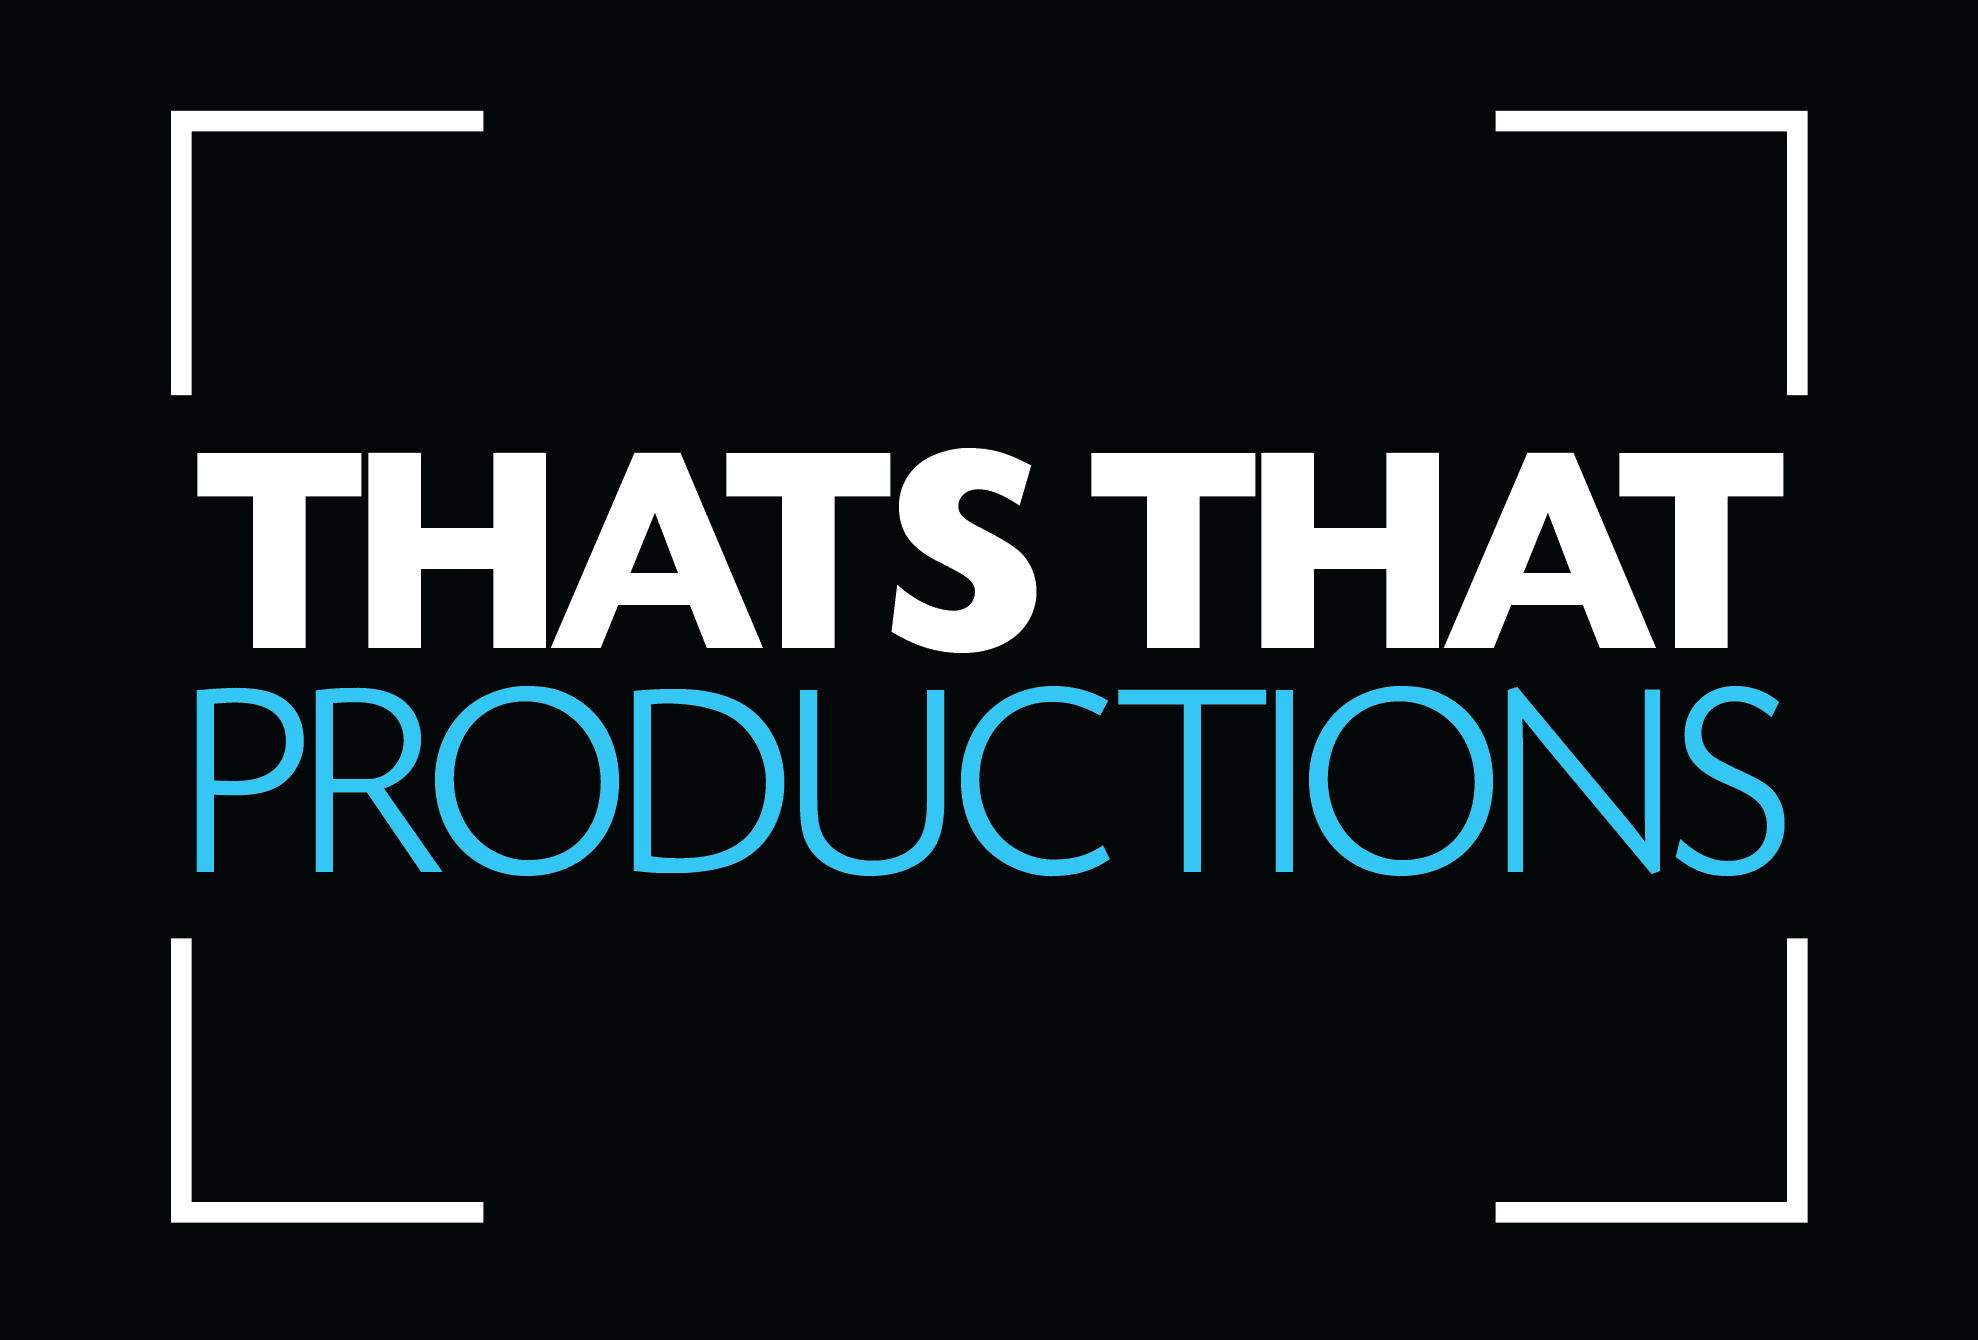 THATS THAT PRODUCTIONS LOGO